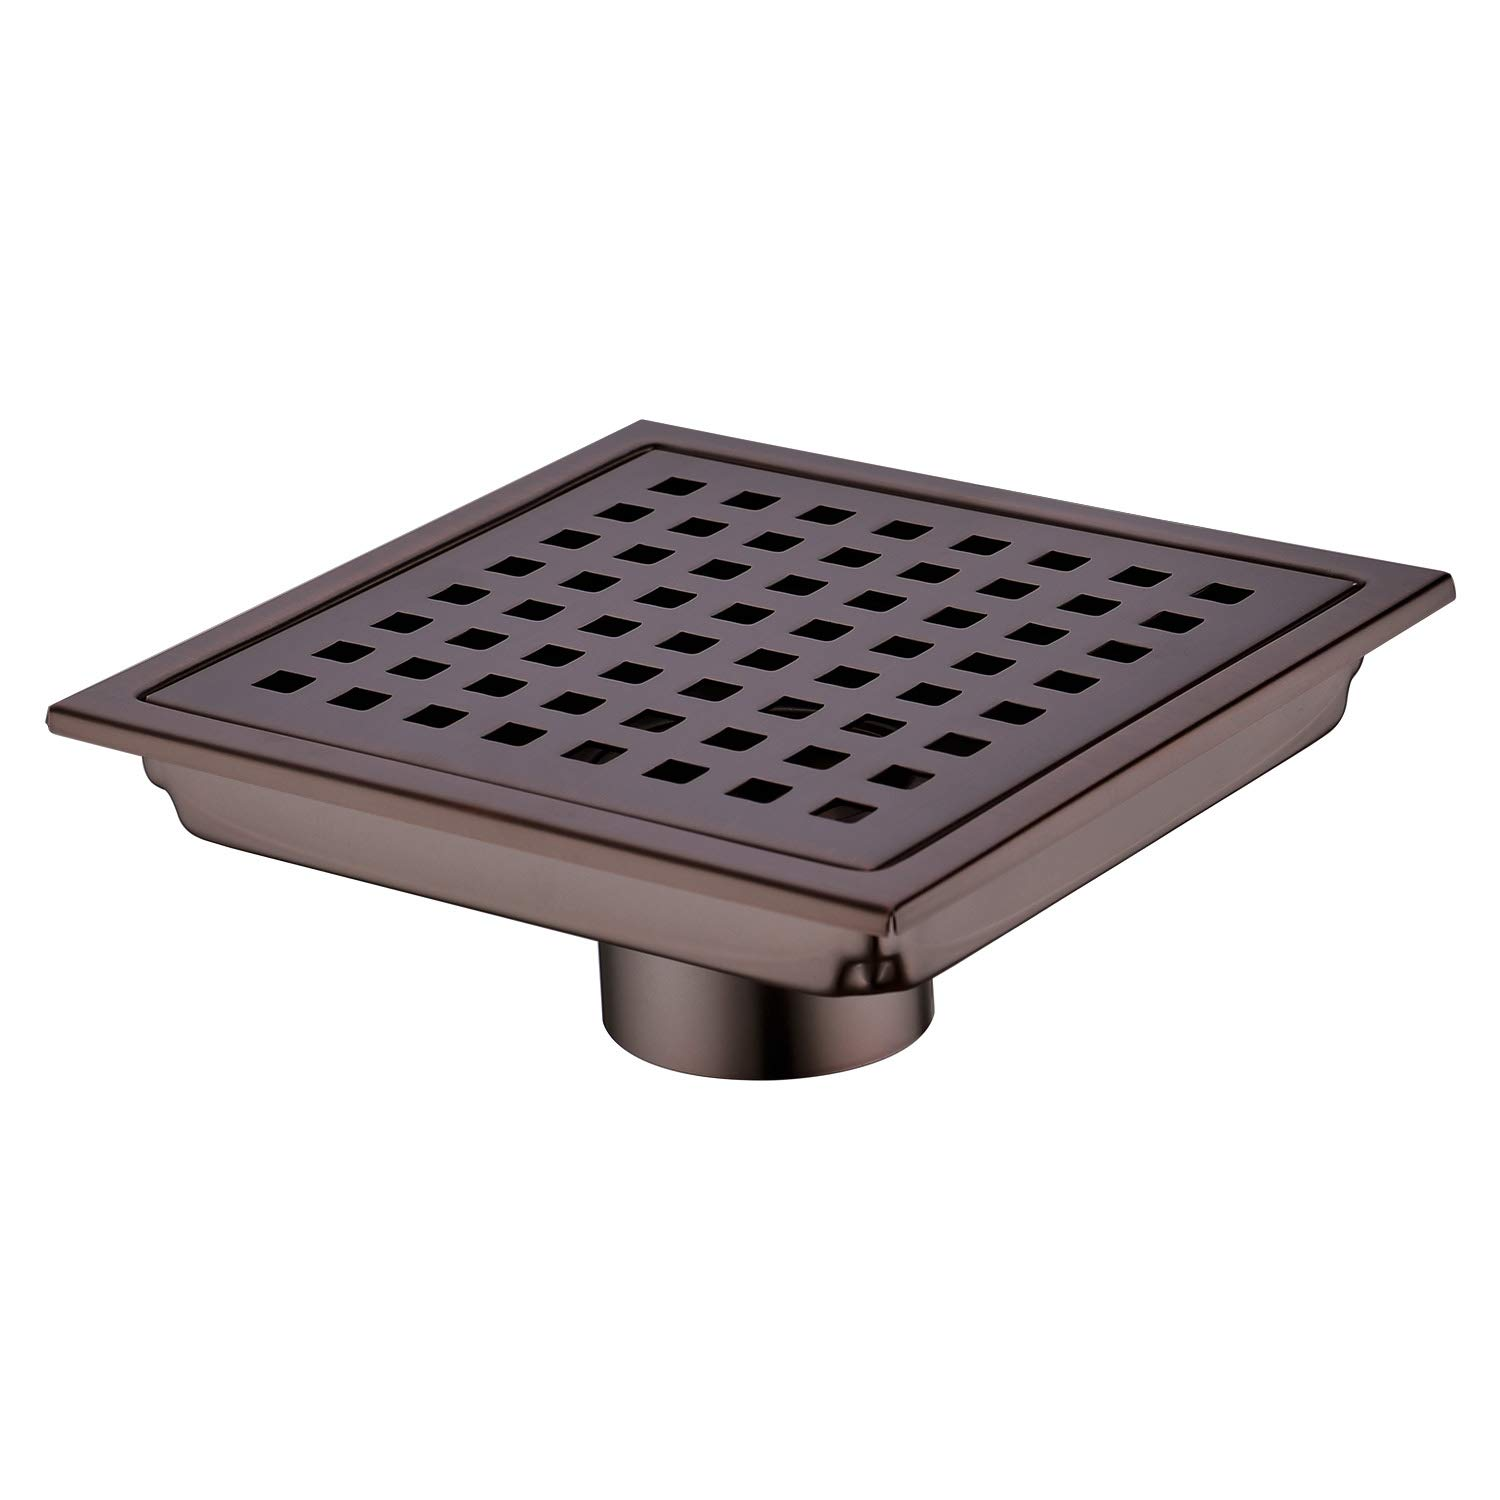 Orhemus Square Shower Floor Drain with Removable Cover Grid Grate 6 inch Long, SUS 304 Stainless Steel Brushed Bronze Finished